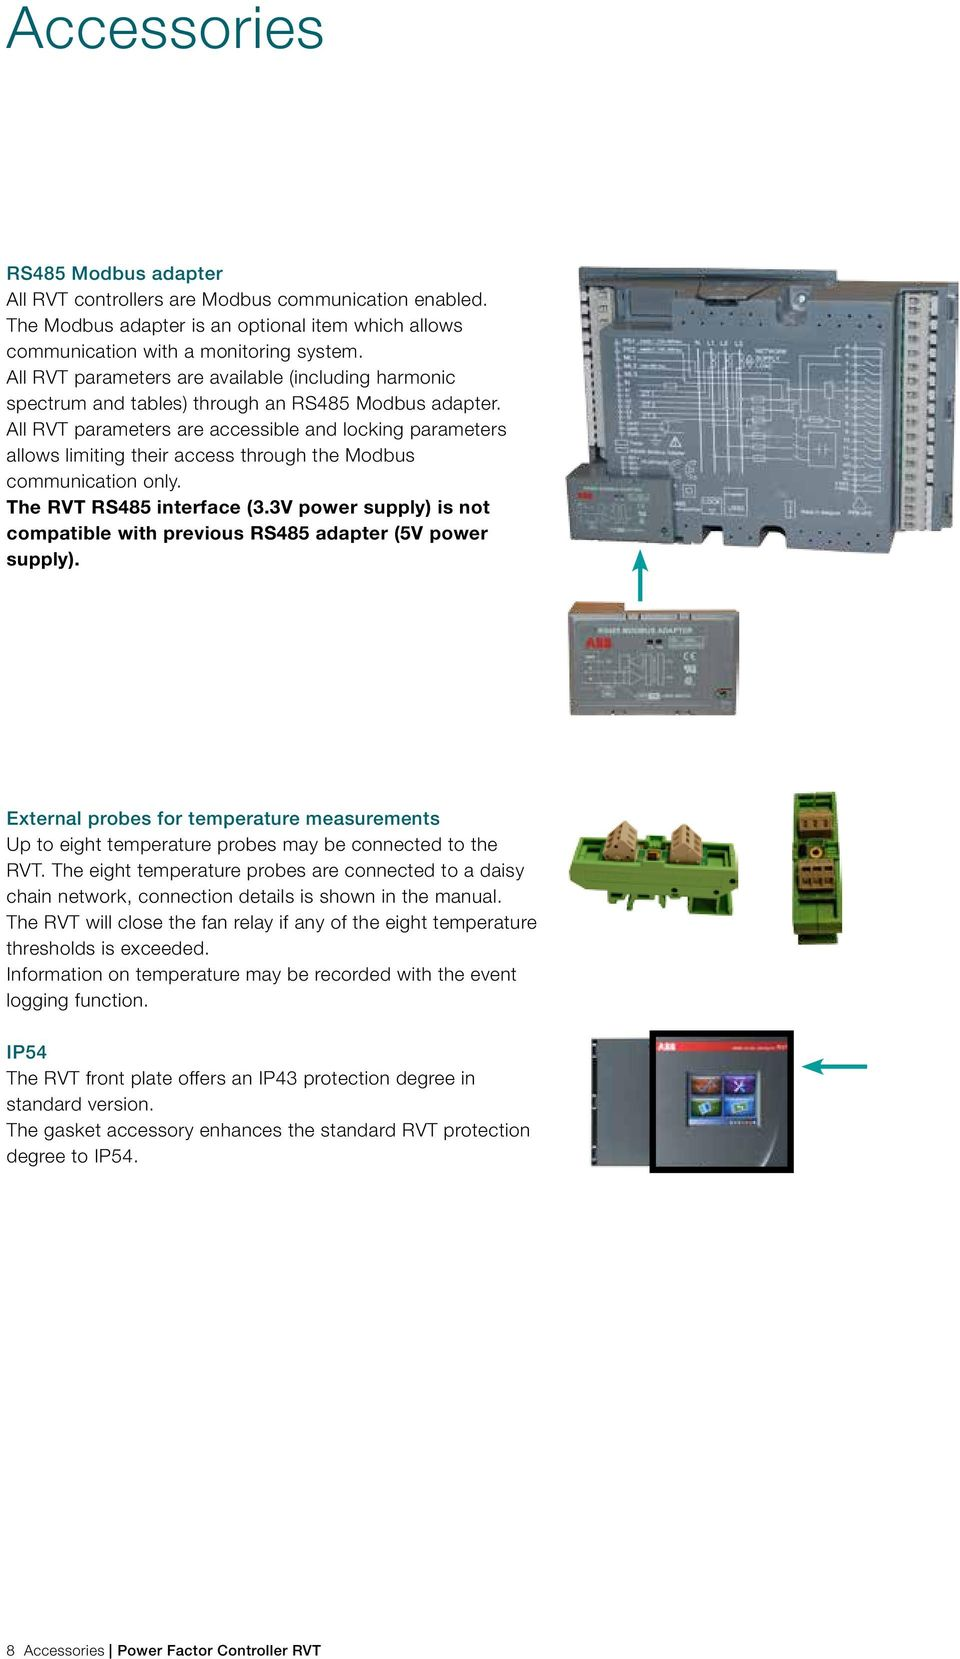 All RVT parameters are accessible and locking parameters allows limiting their access through the Modbus communication only. The RVT RS485 interface (3.